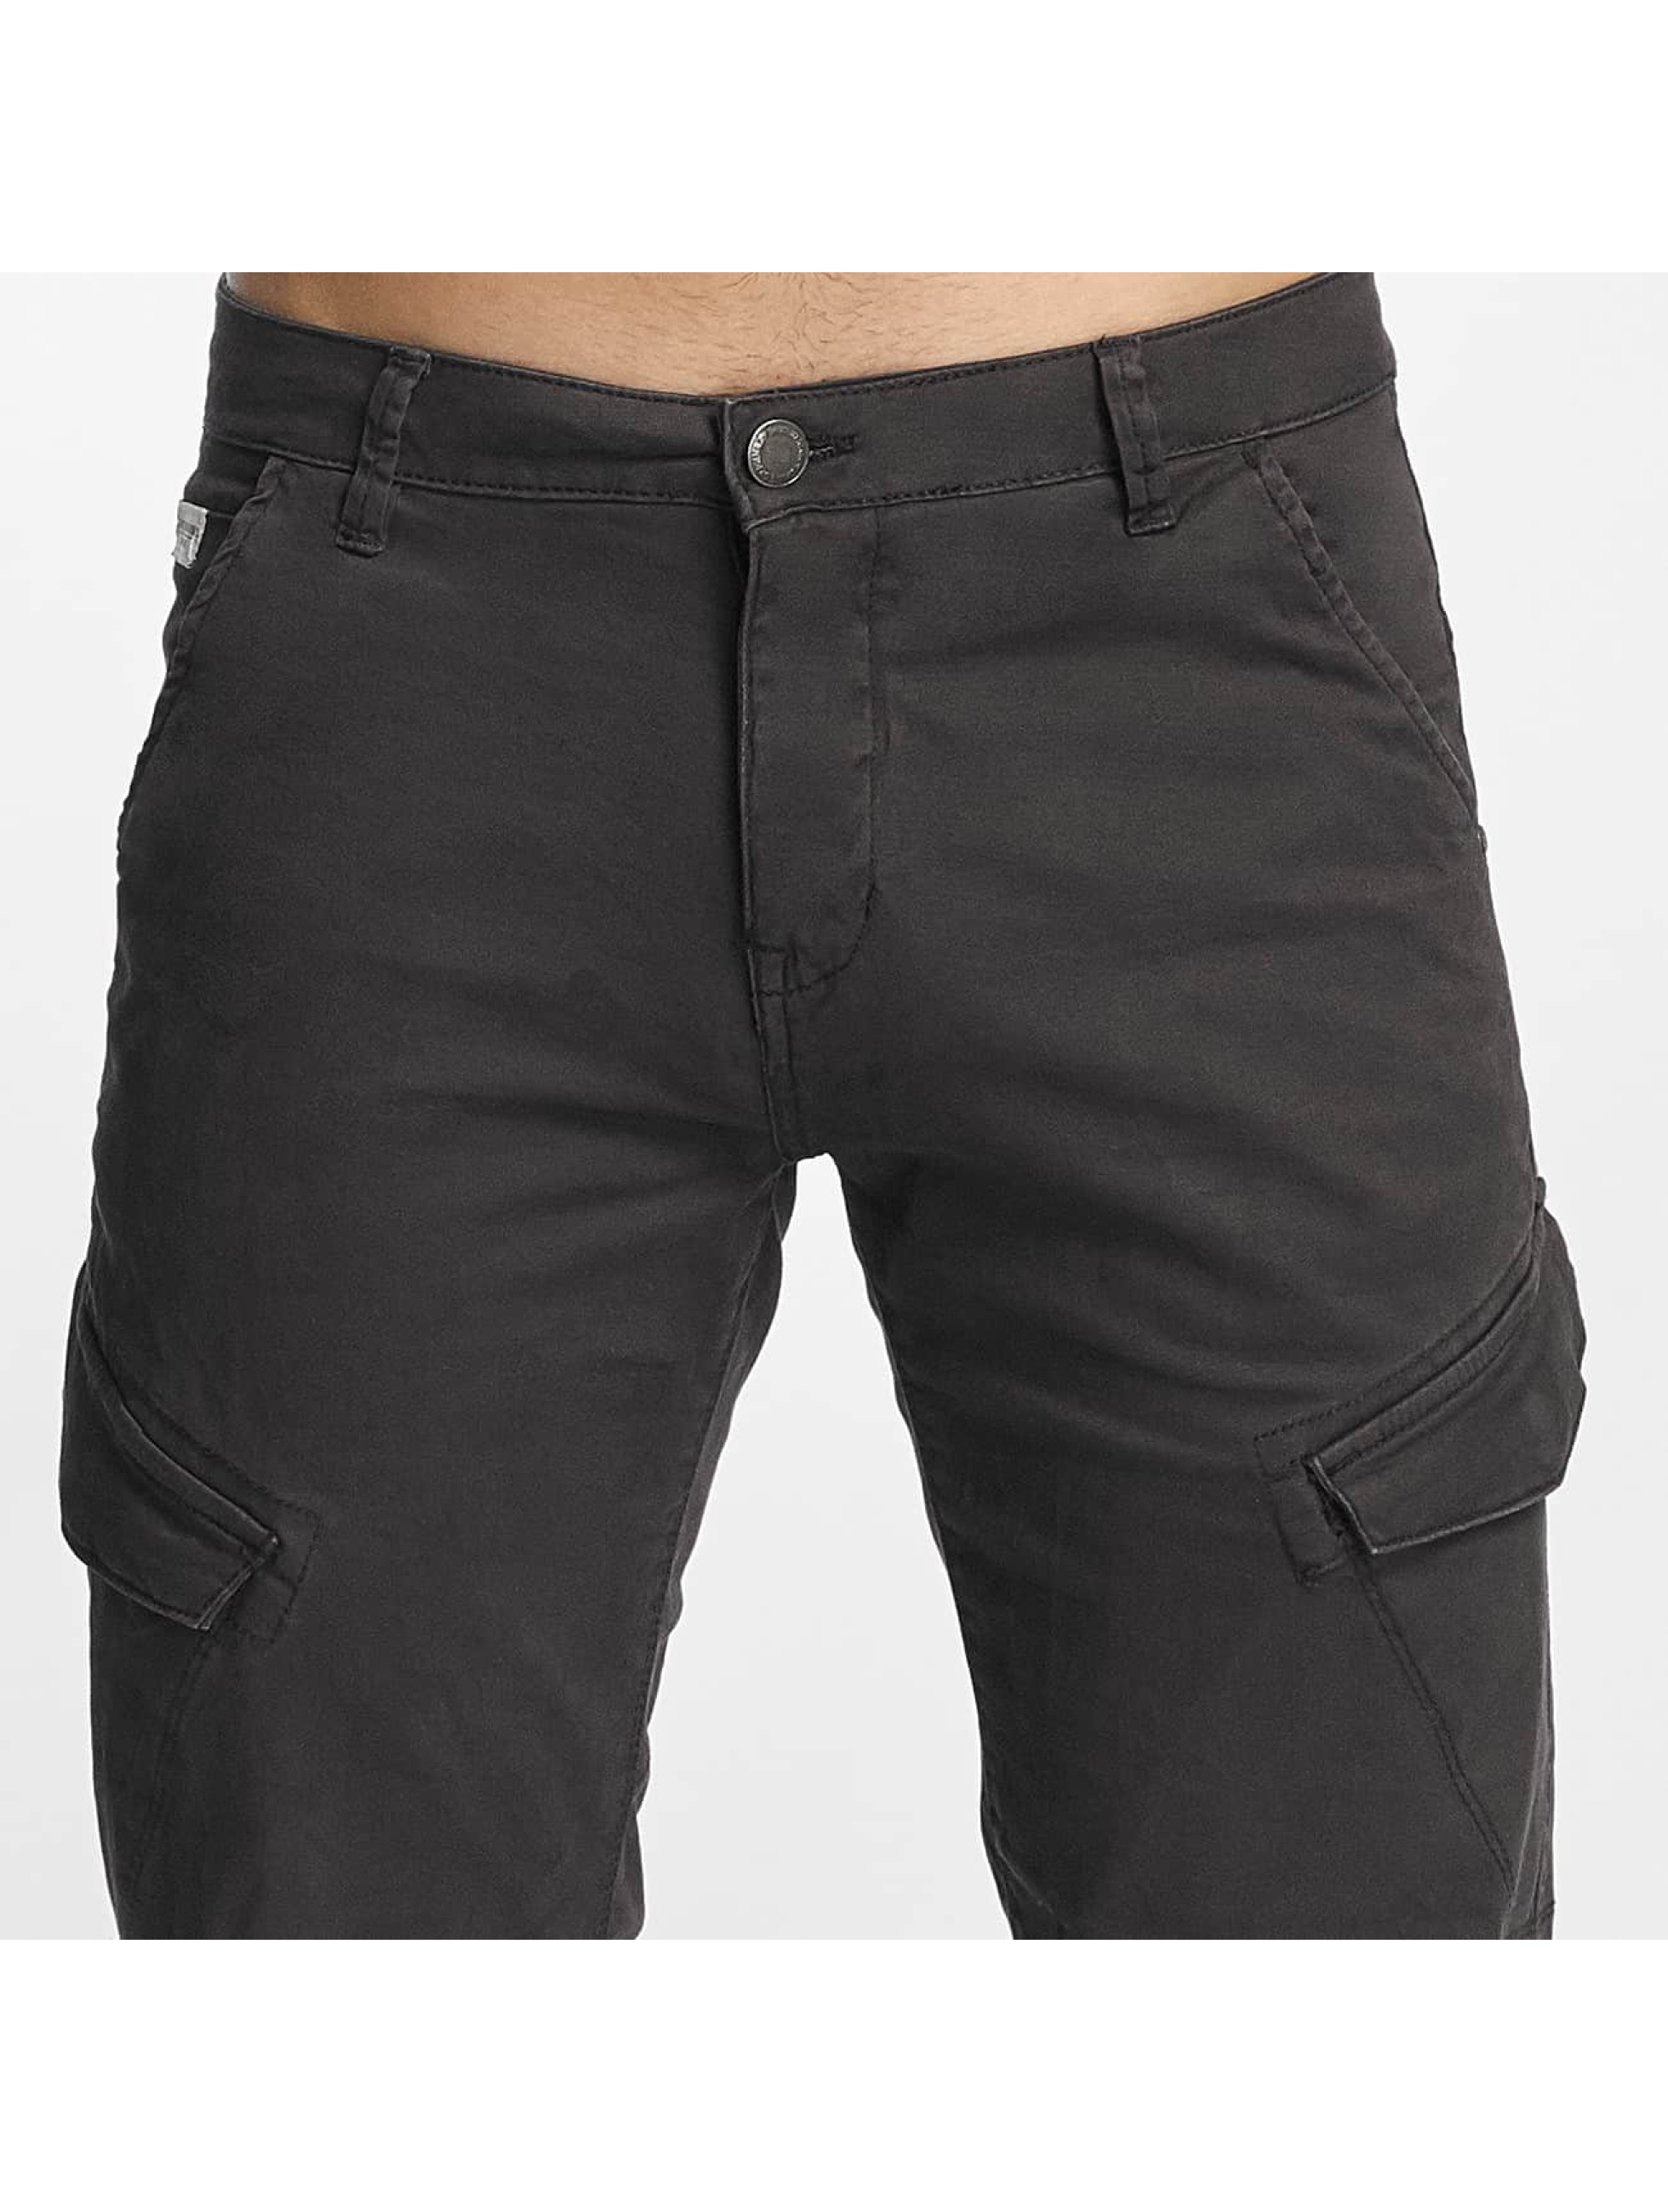 SHINE Original Pantalon cargo Slim gris